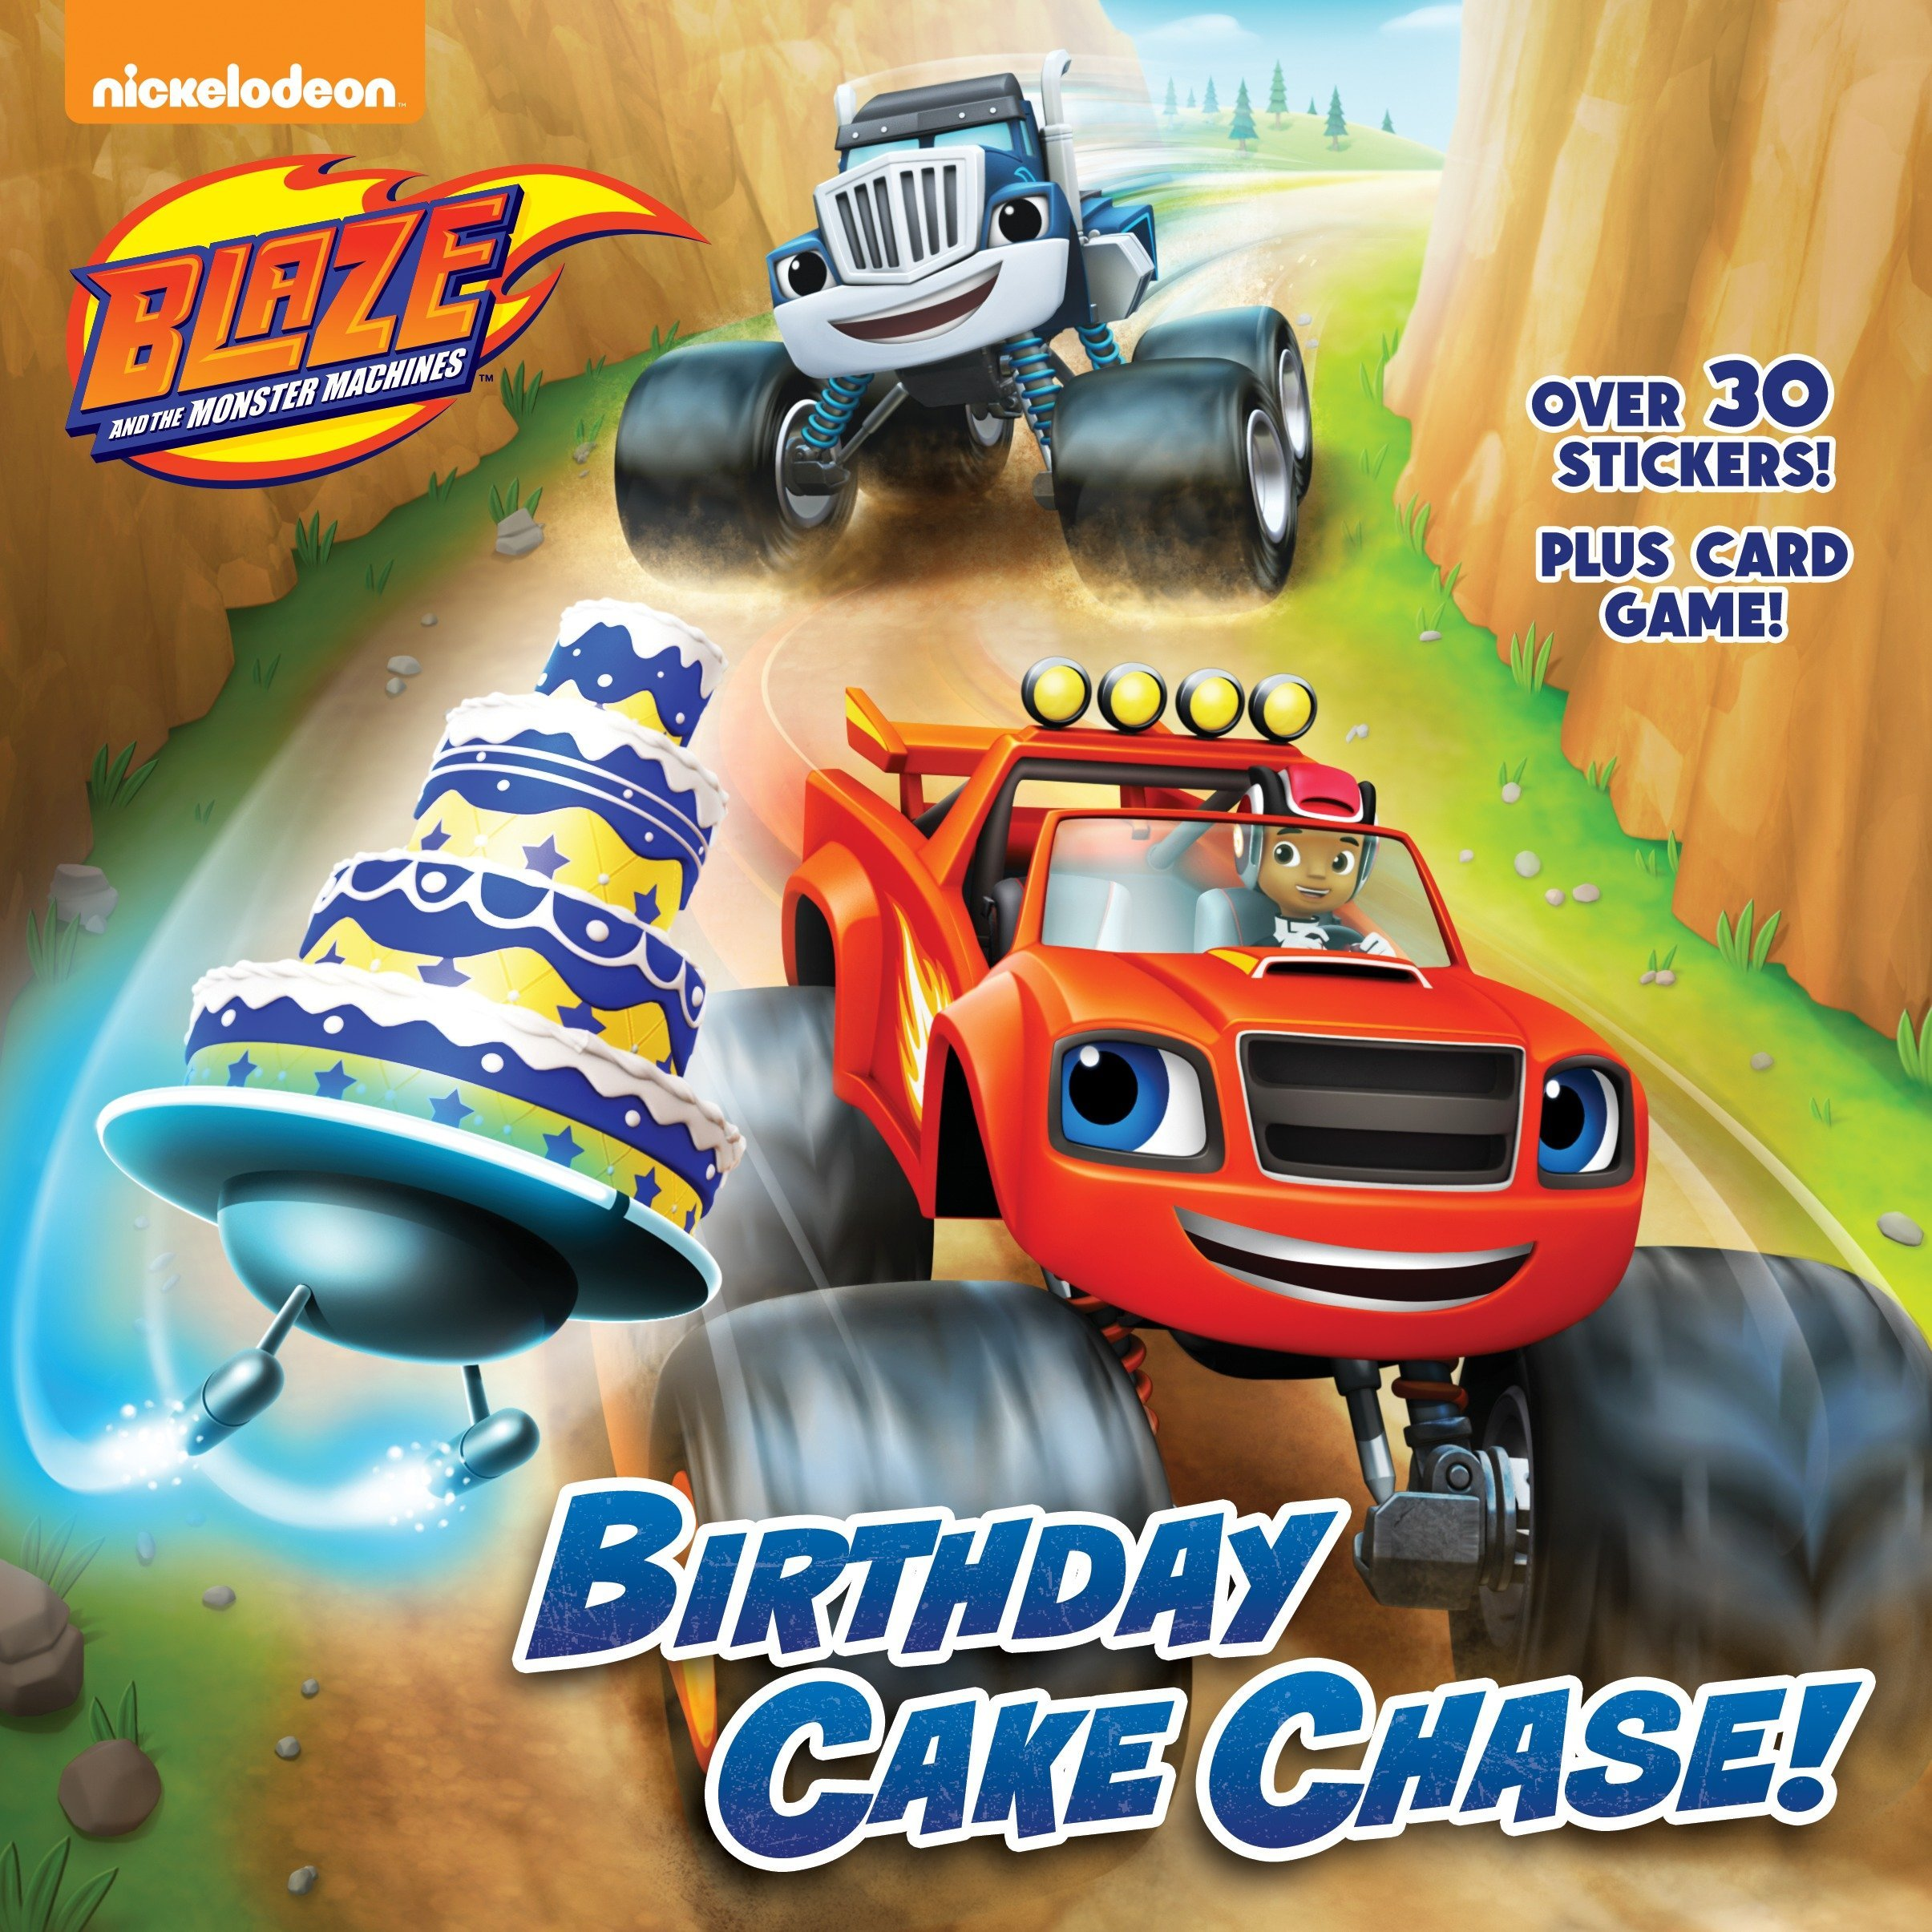 Amazon Birthday Cake Chase Blaze And The Monster Machines